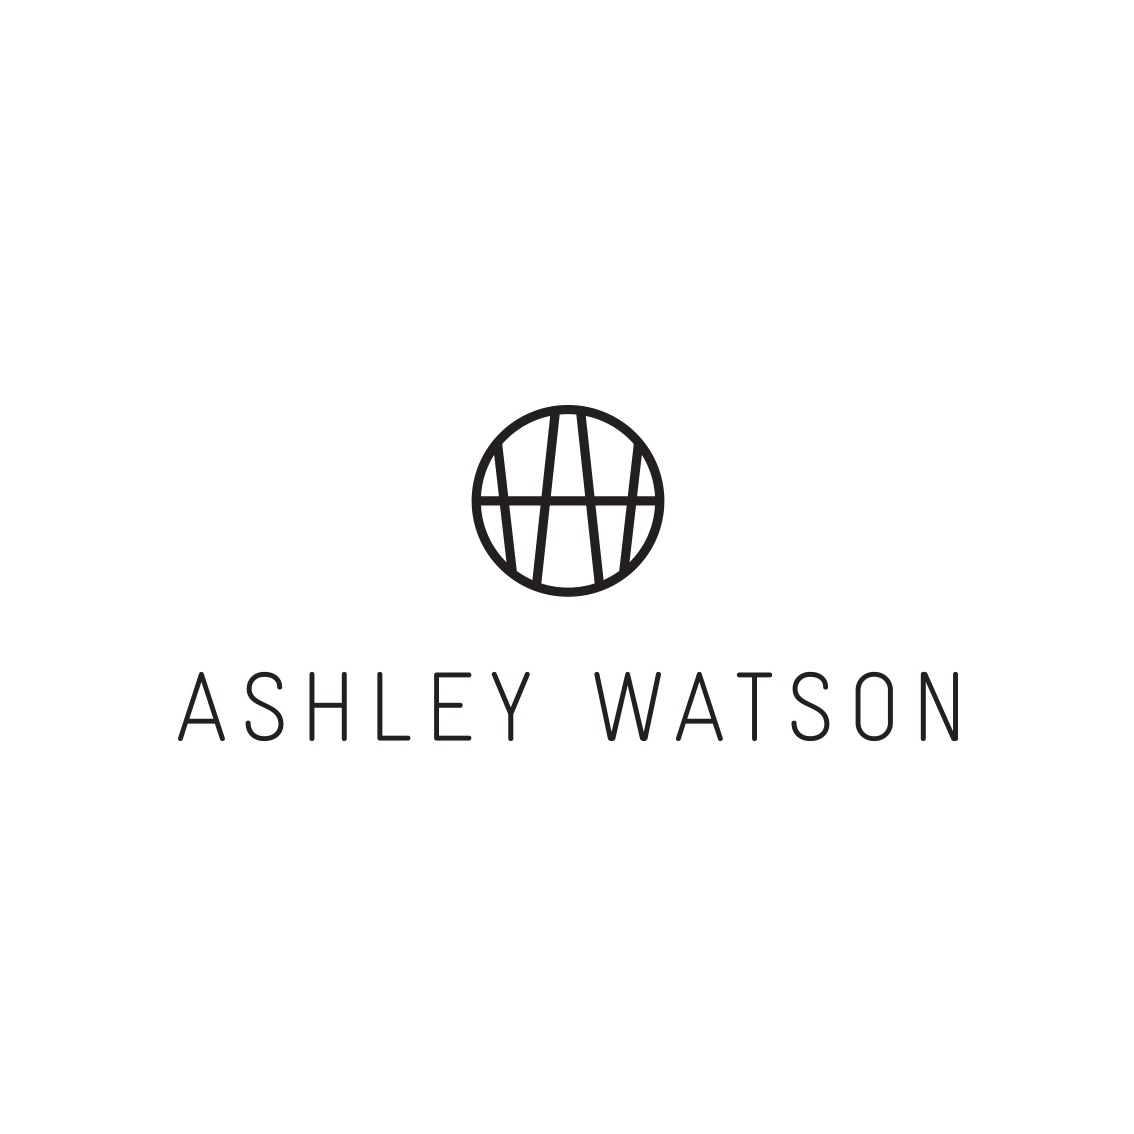 Ashley Watson